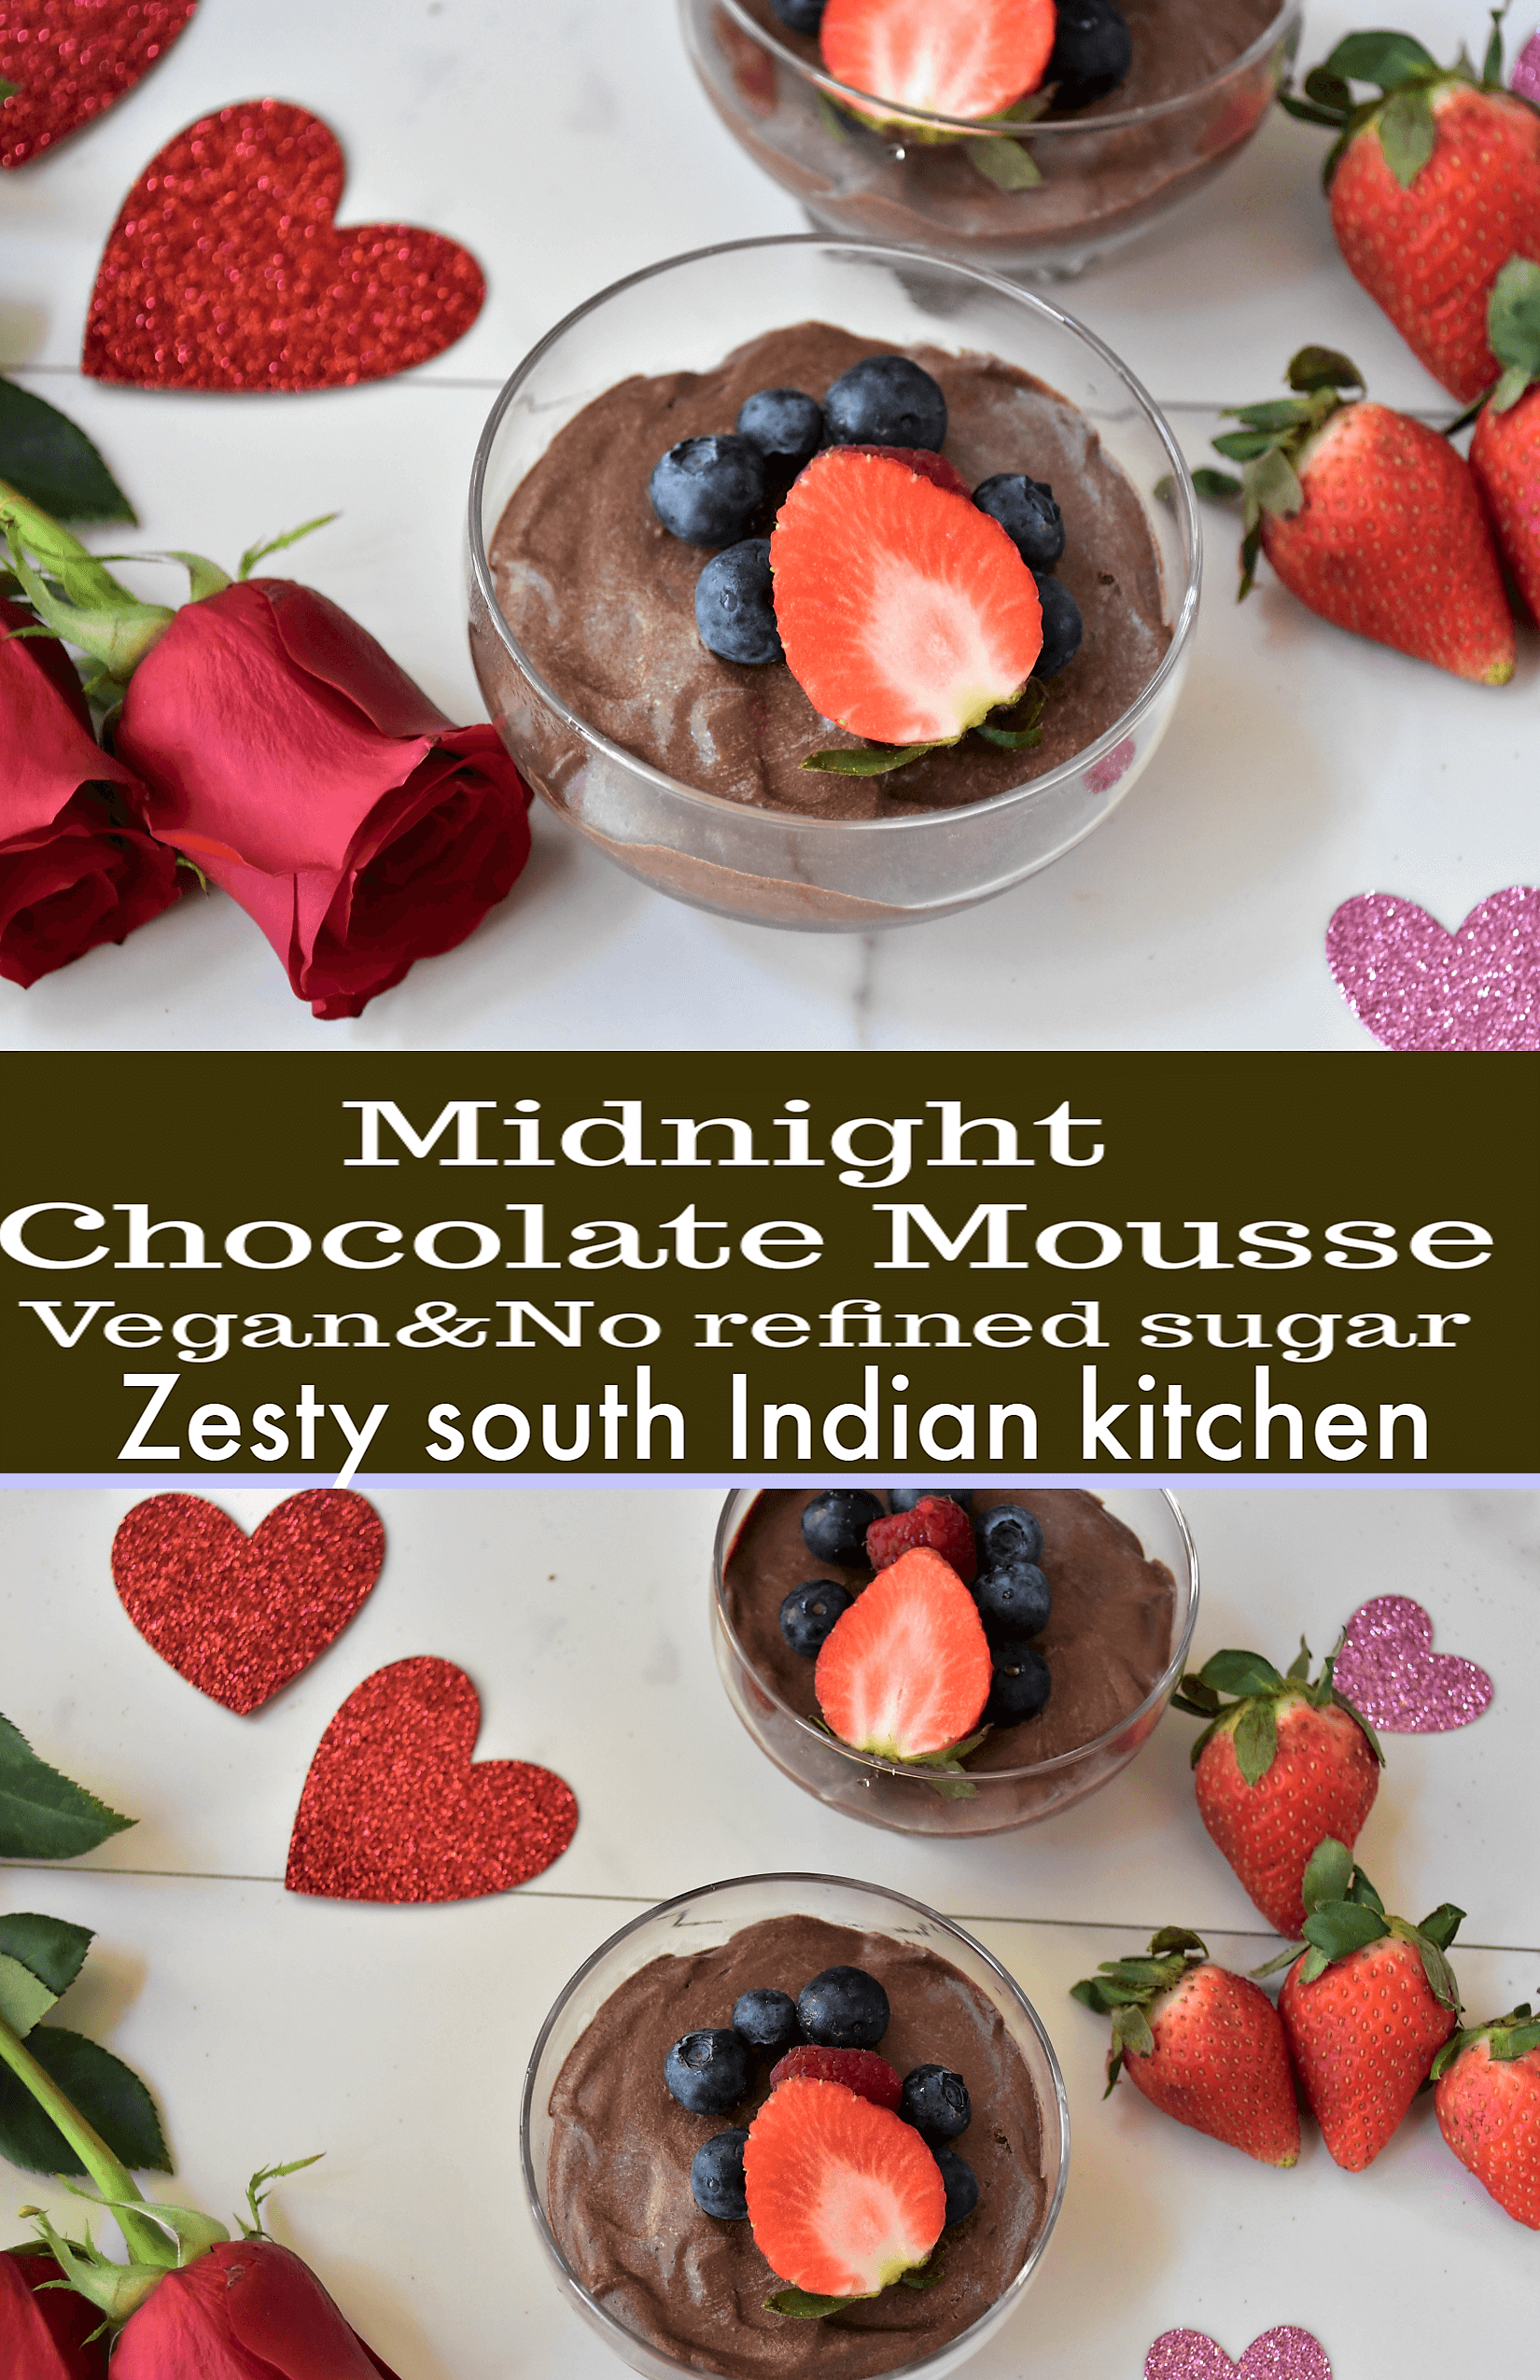 Delicious chocolate mousse with intense chocolate flavor ...